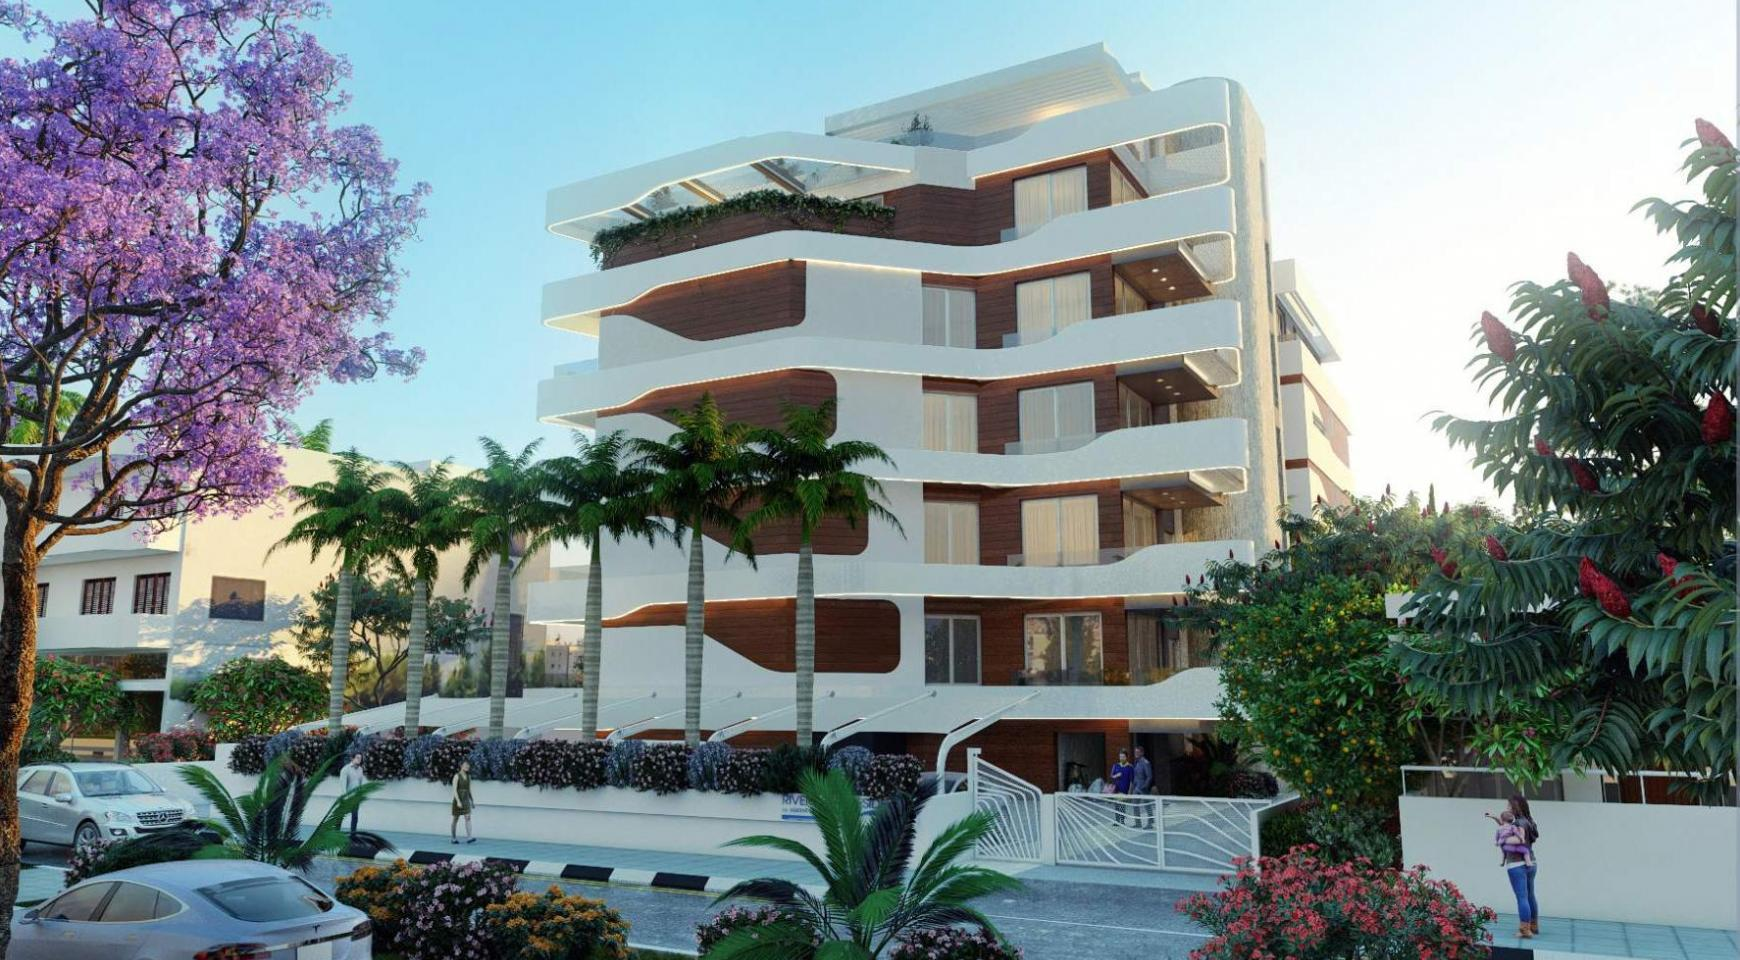 New 2 Bedroom Apartment in a Contemporary Complex near the Sea - 6